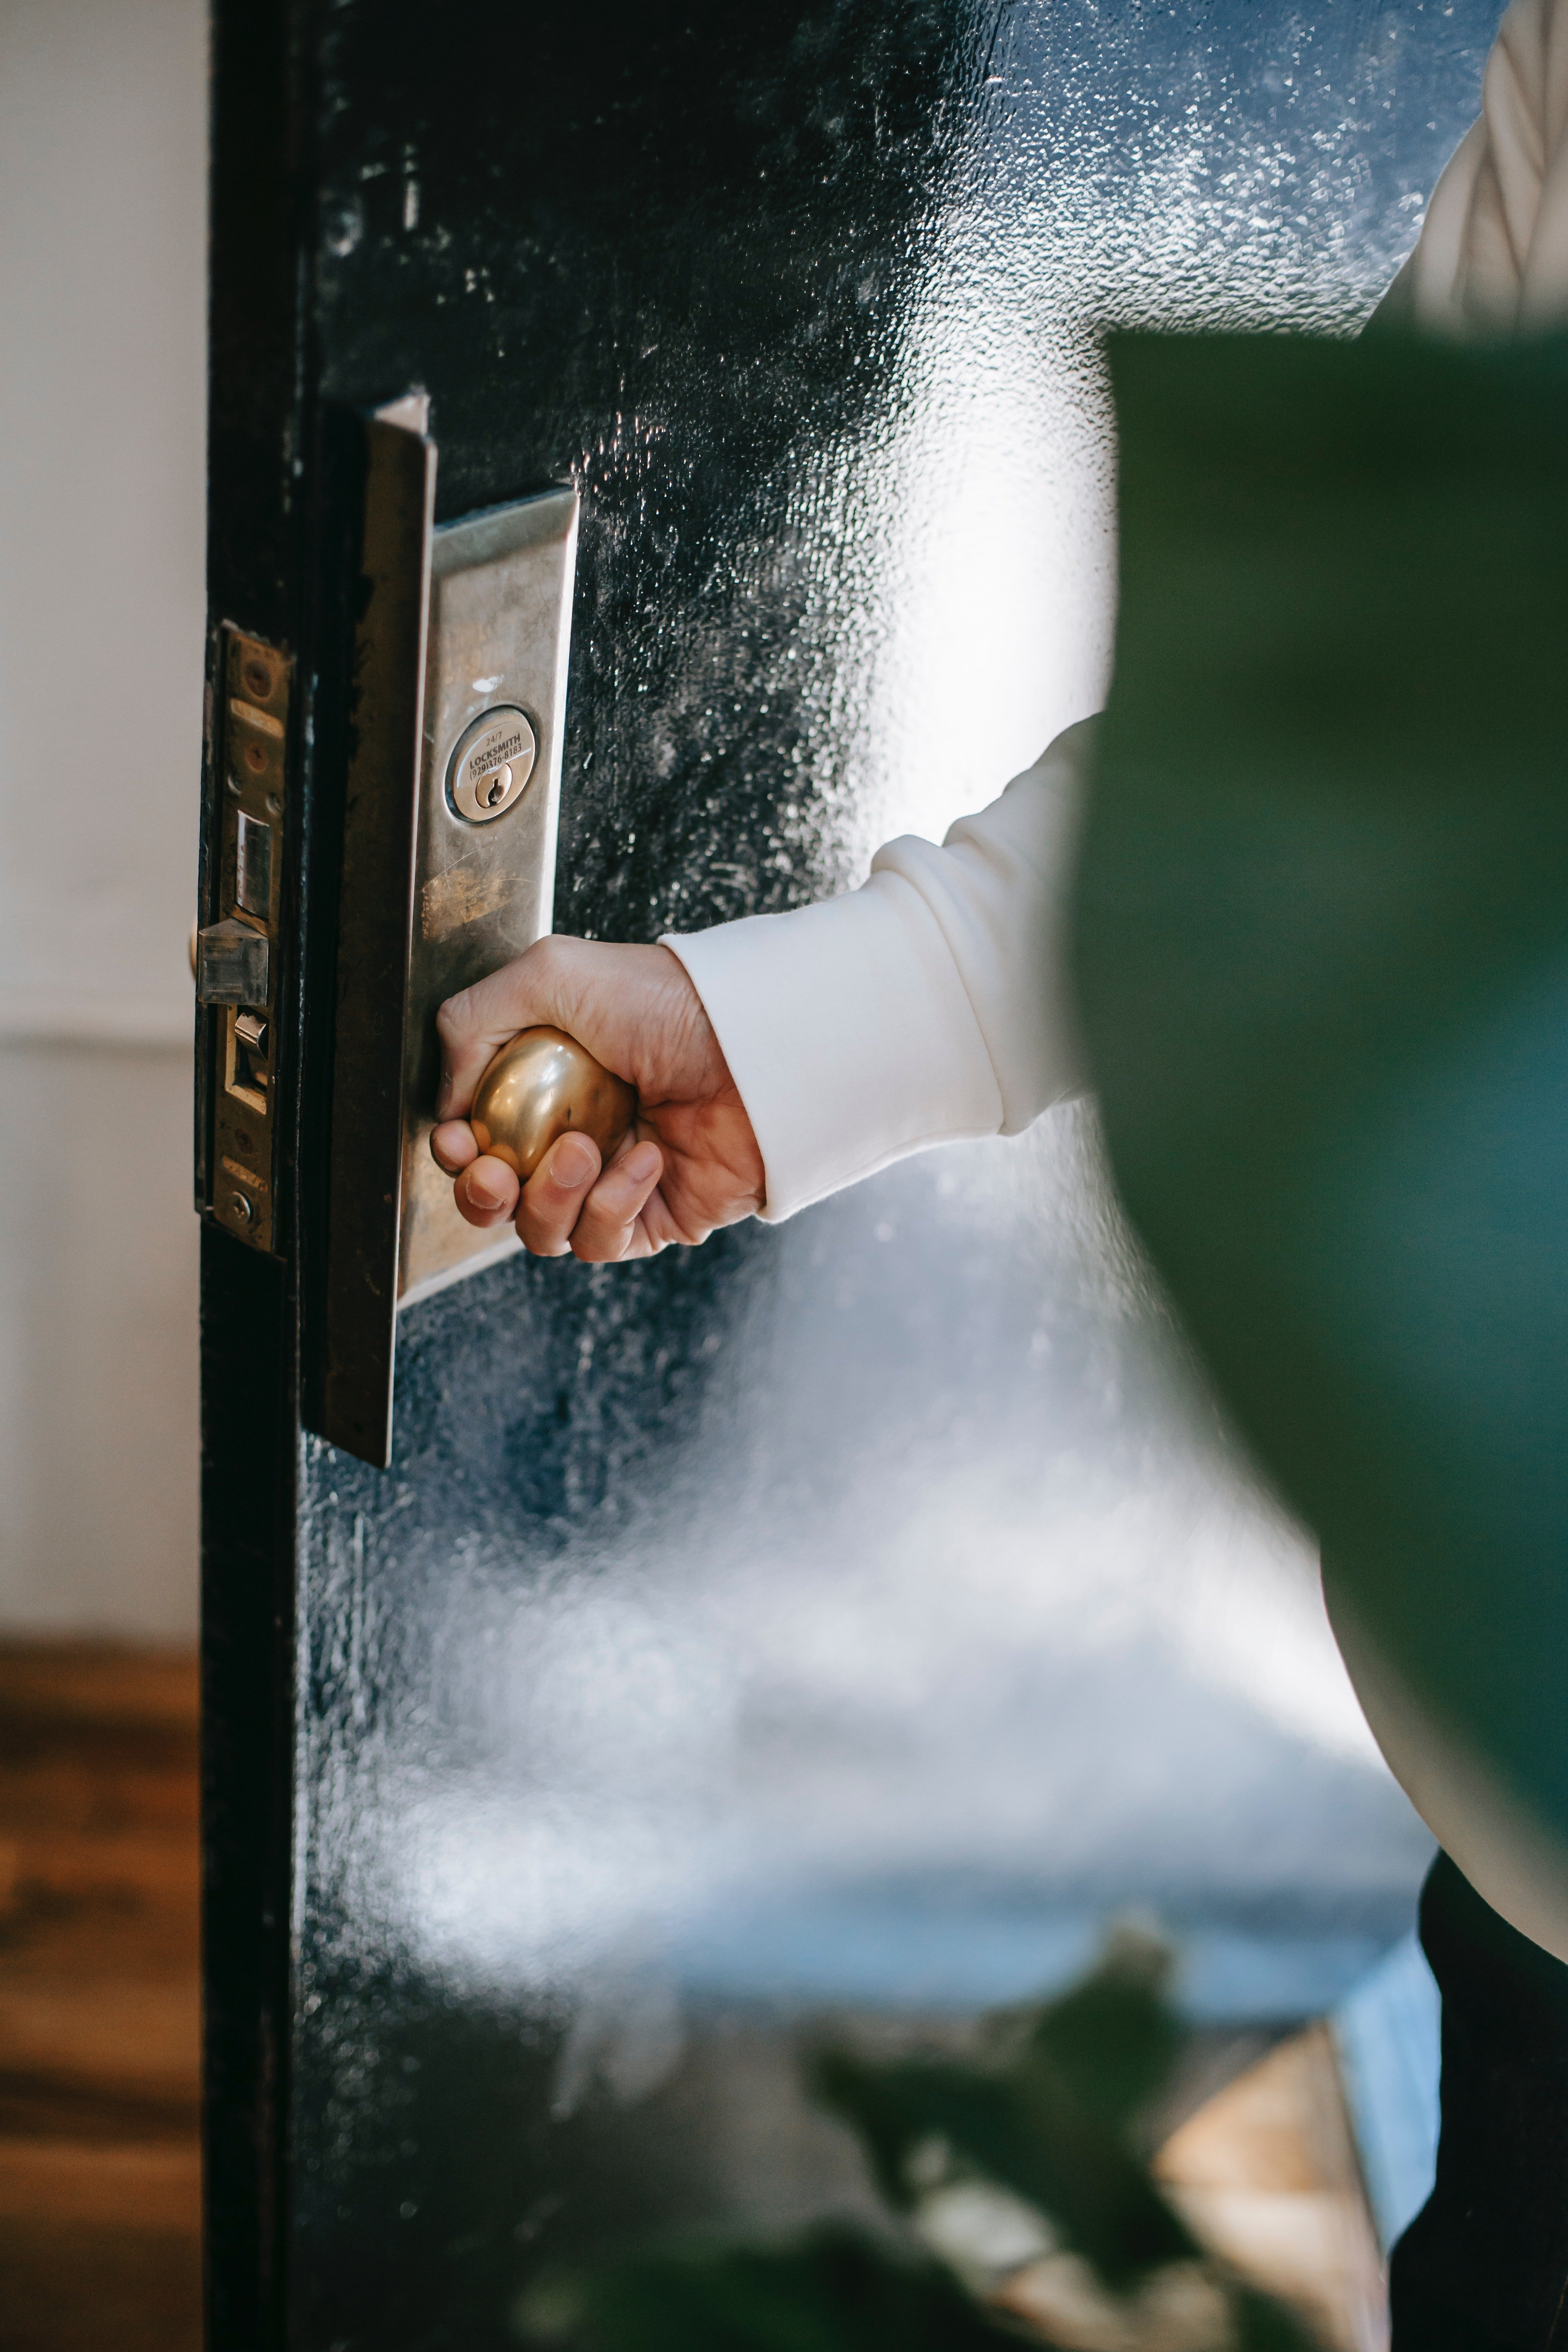 A hand holding on to a door handle | Source: Pexels